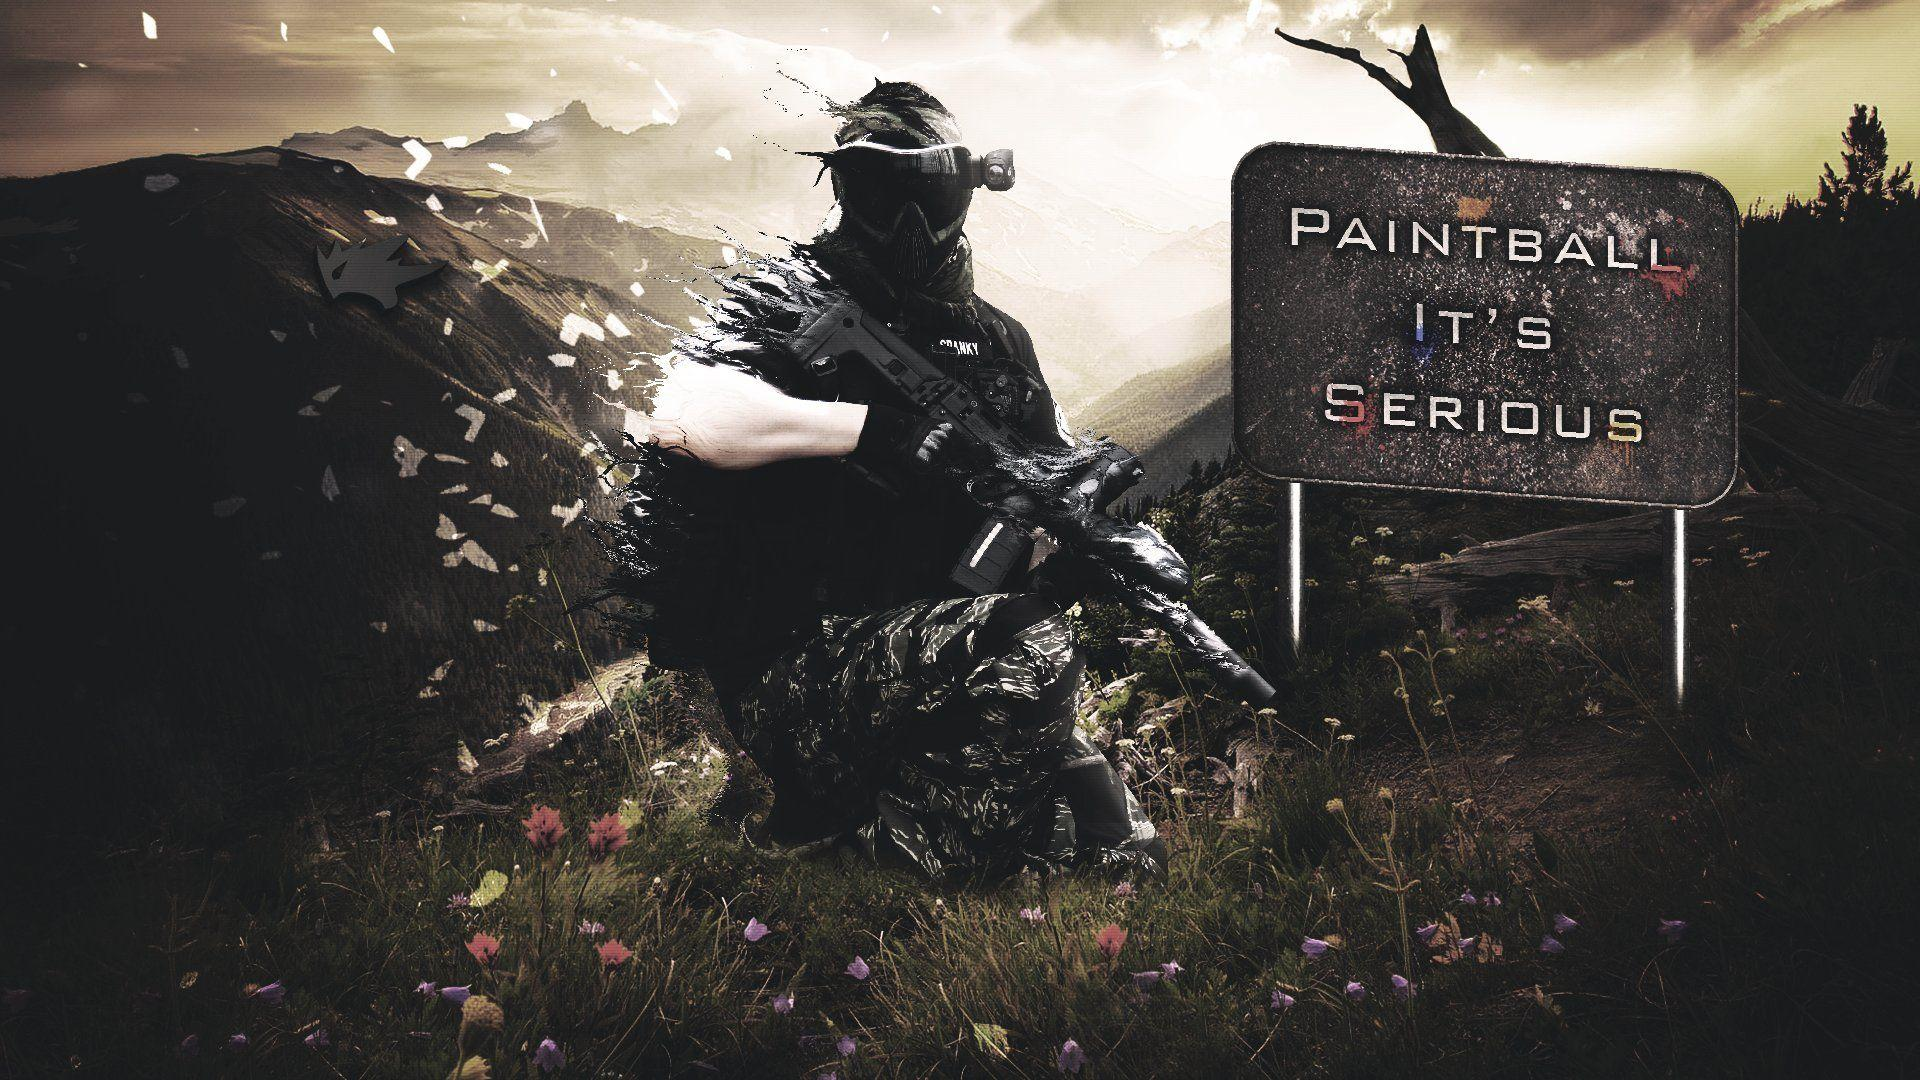 Download Original Wallpaper Category sports Source · Paintball Wallpapers HD Wallpaper Cave